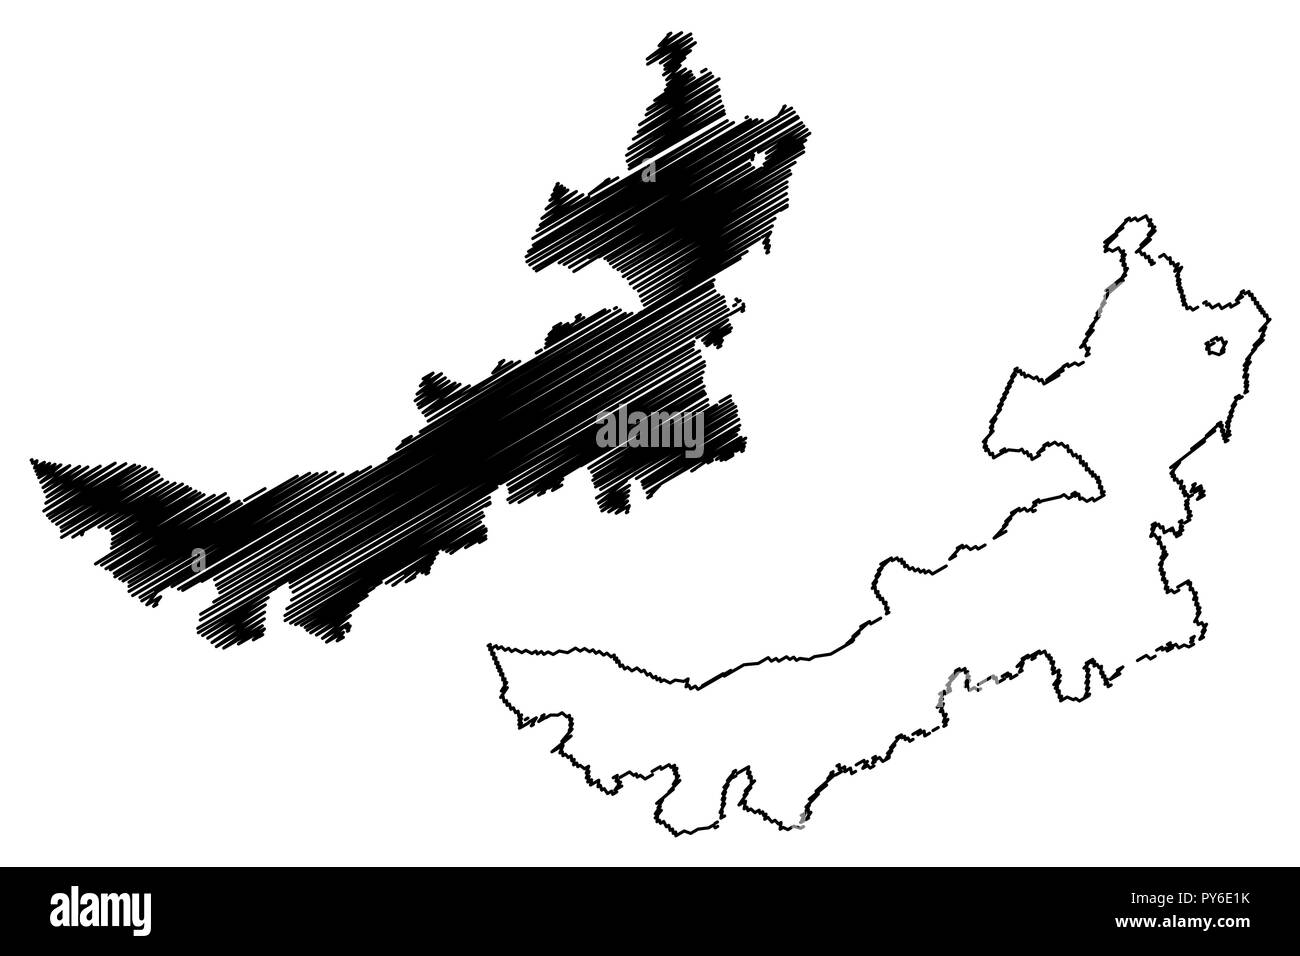 Nei Mongol Autonomous Region (Administrative divisions of China, China, People's Republic of China, PRC) map vector illustration, scribble sketch Inne - Stock Vector